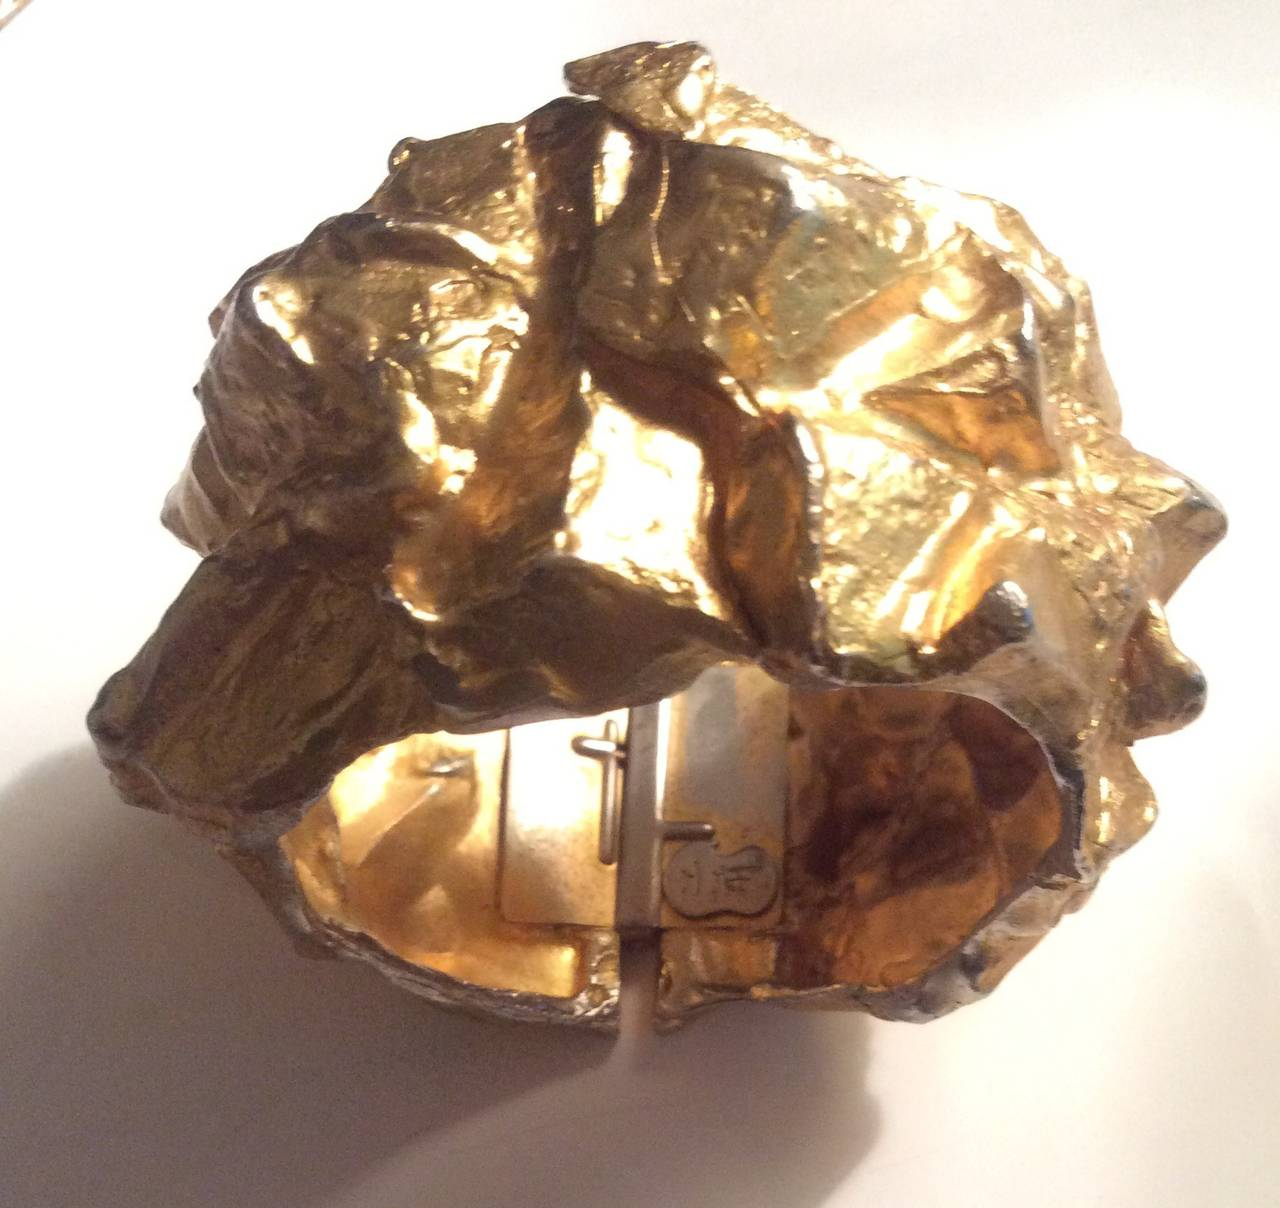 Rare Vintage Mary McFadden Runway Hammered Gold Jumbo Cuff Bracelet Signed In Excellent Condition For Sale In San Francisco, CA